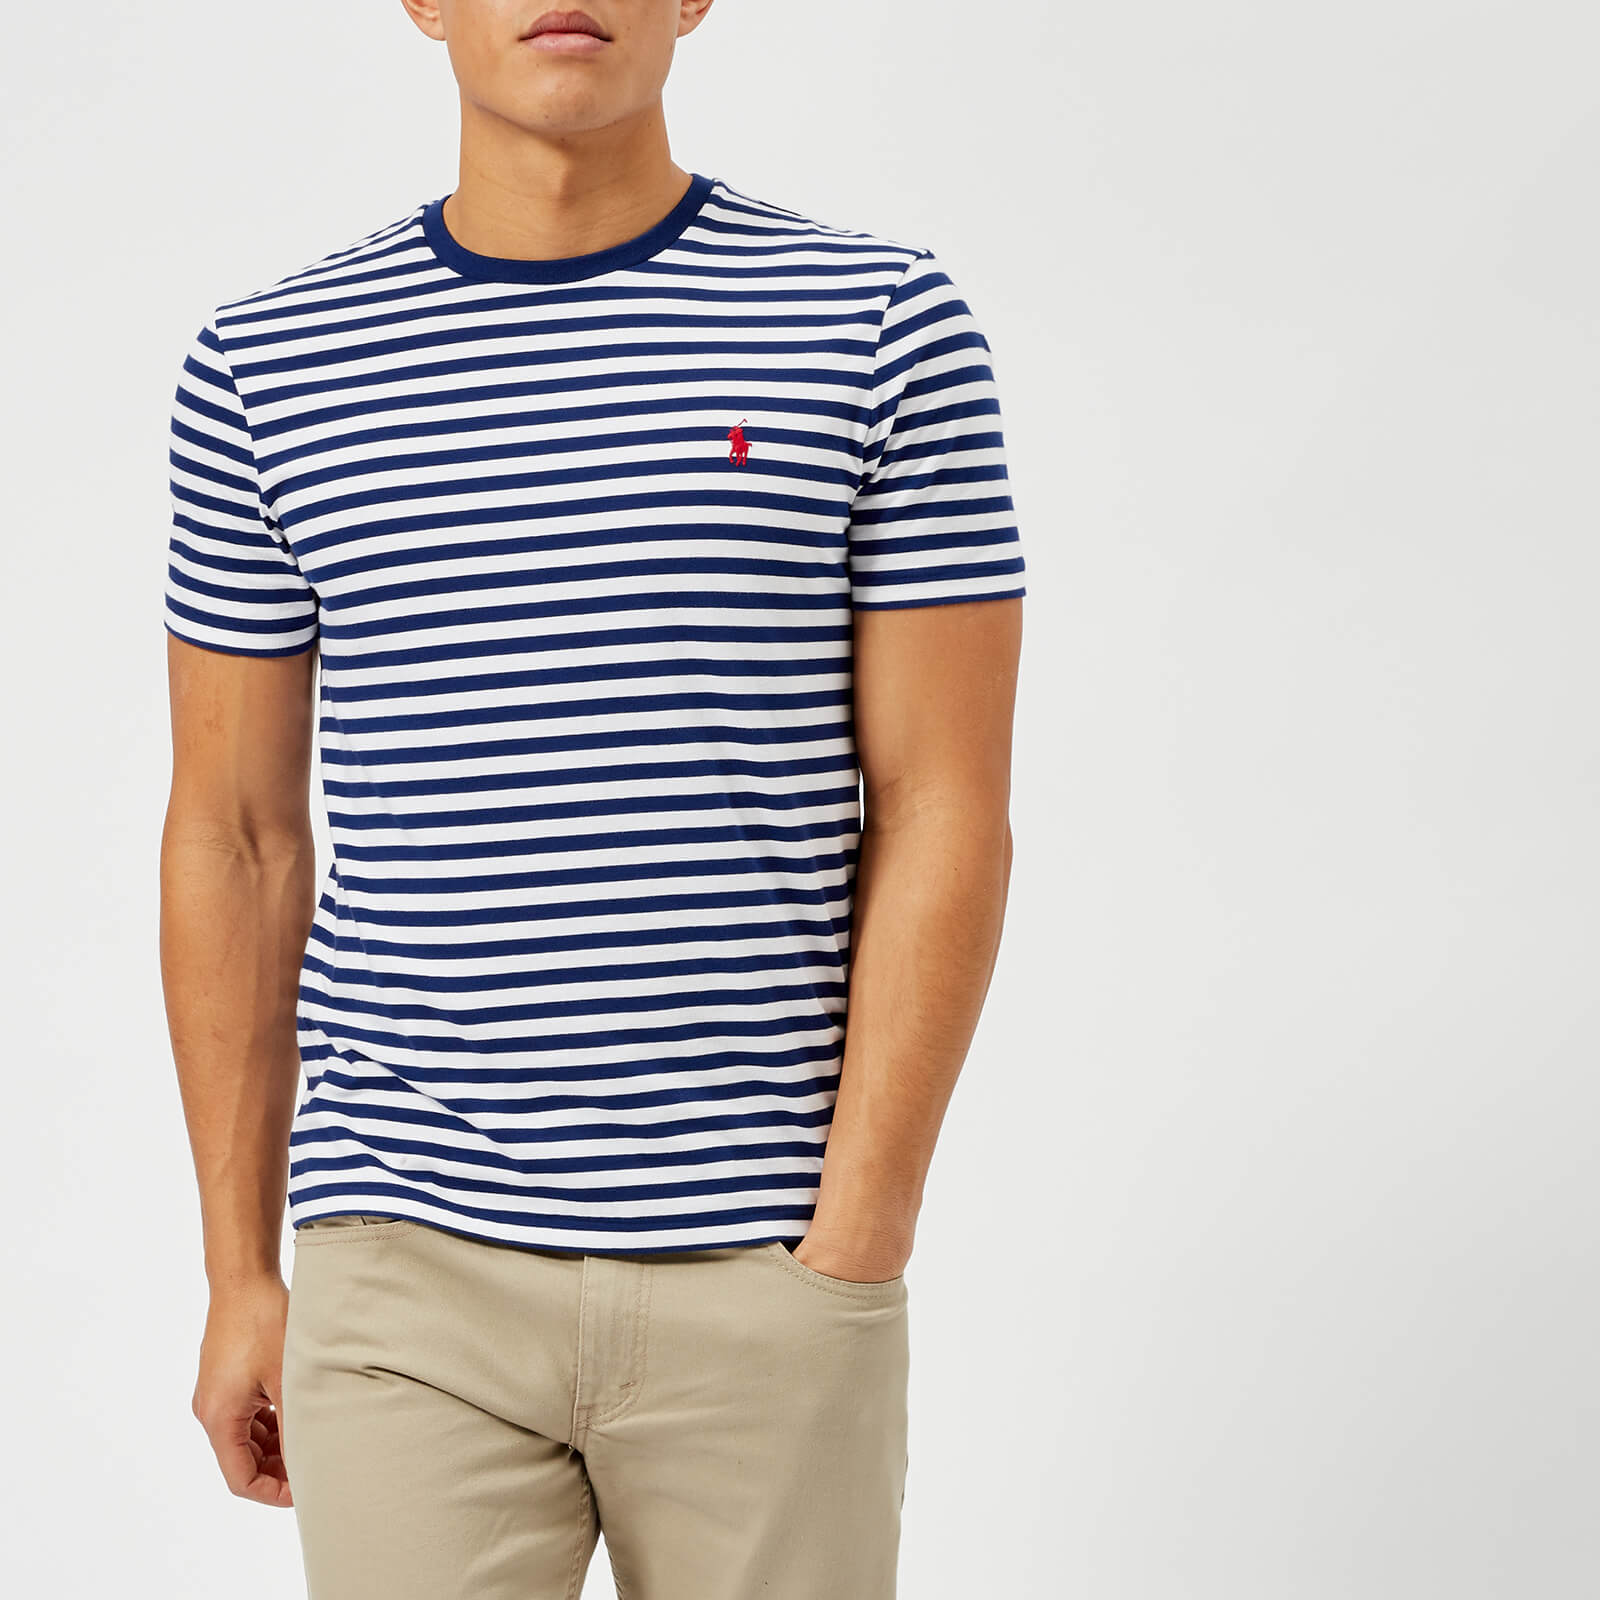 34e28b1139d58 Polo Ralph Lauren Men s Striped Short Sleeve T-Shirt - Fall Royal White -  Free UK Delivery over £50